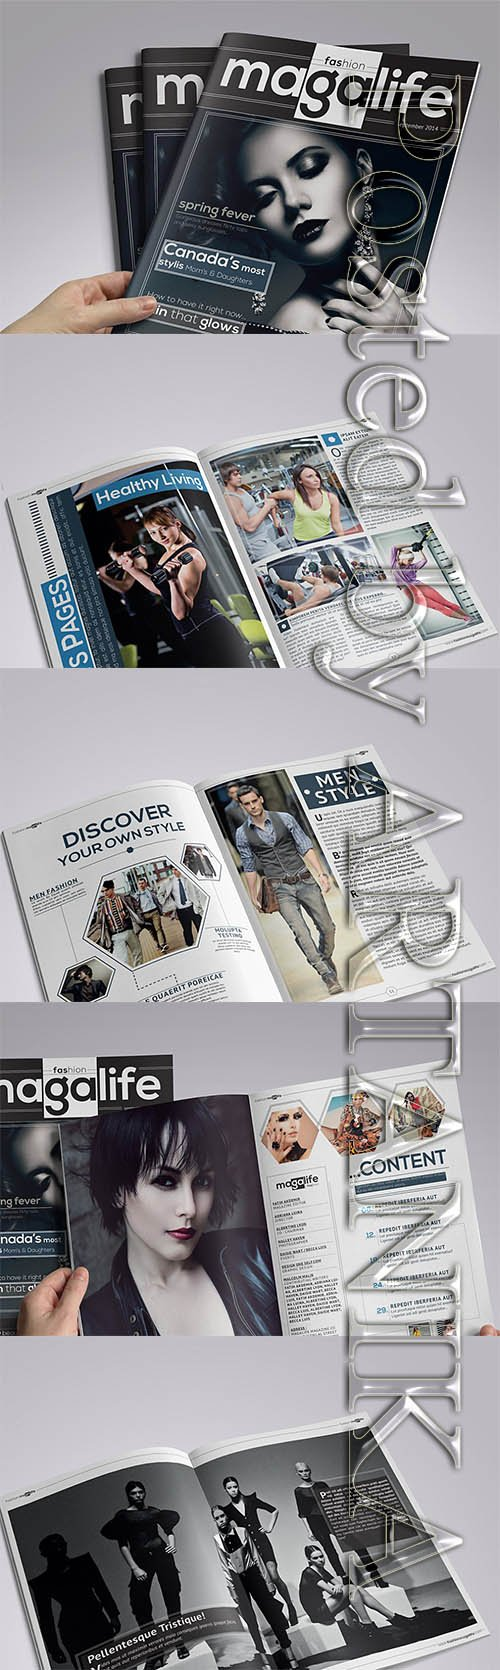 CreativeMarket - Magalife Magazine Template 1129862